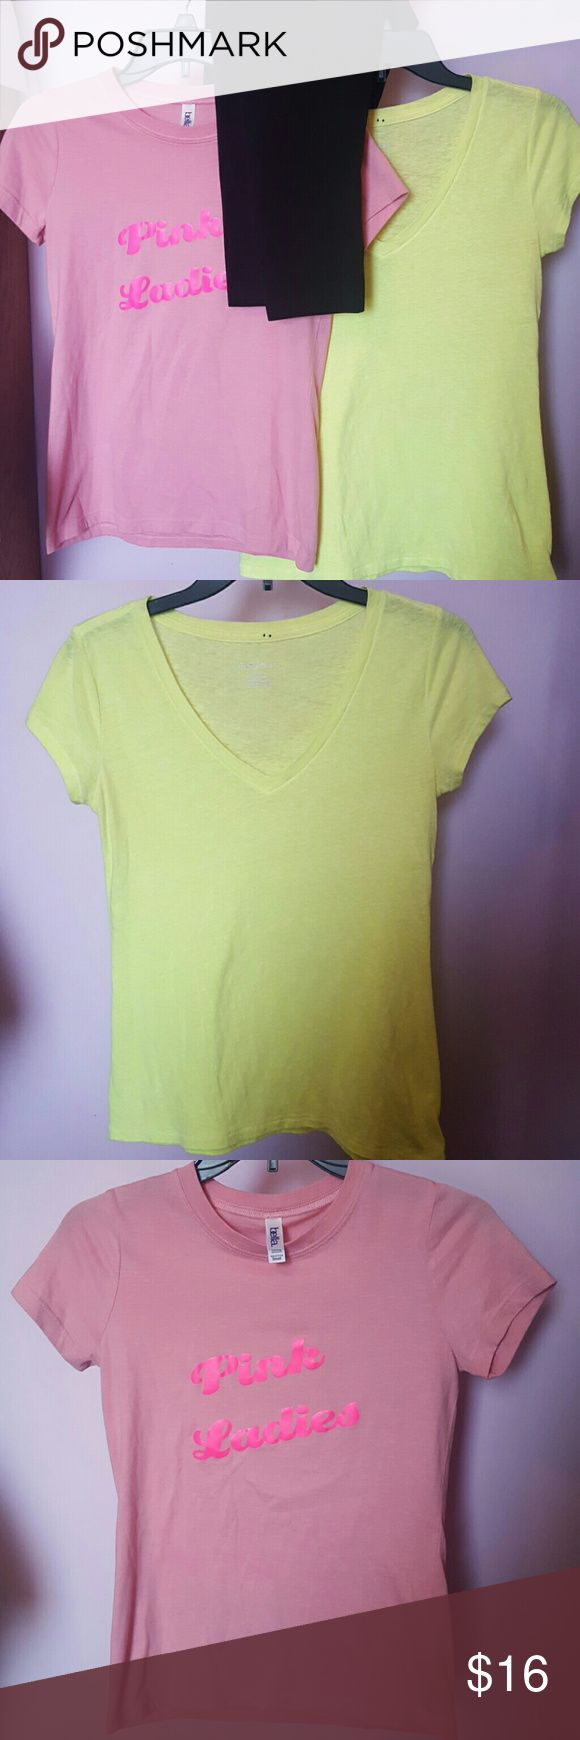 """🌷Size Small Bundle! Cute size small clothing bundle! Neon yellow xhilaration short sleeve tshirt, pink tshirt that sayes """"pink ladies"""" in neon pink on front, and a pair of black J.Jill ankle leggings. All size small, and all are in good used condition. The yellow shirt is a very bright neon yellow, the pictures don't do its bright color justice Xhilaration Tops Tees - Short Sleeve"""